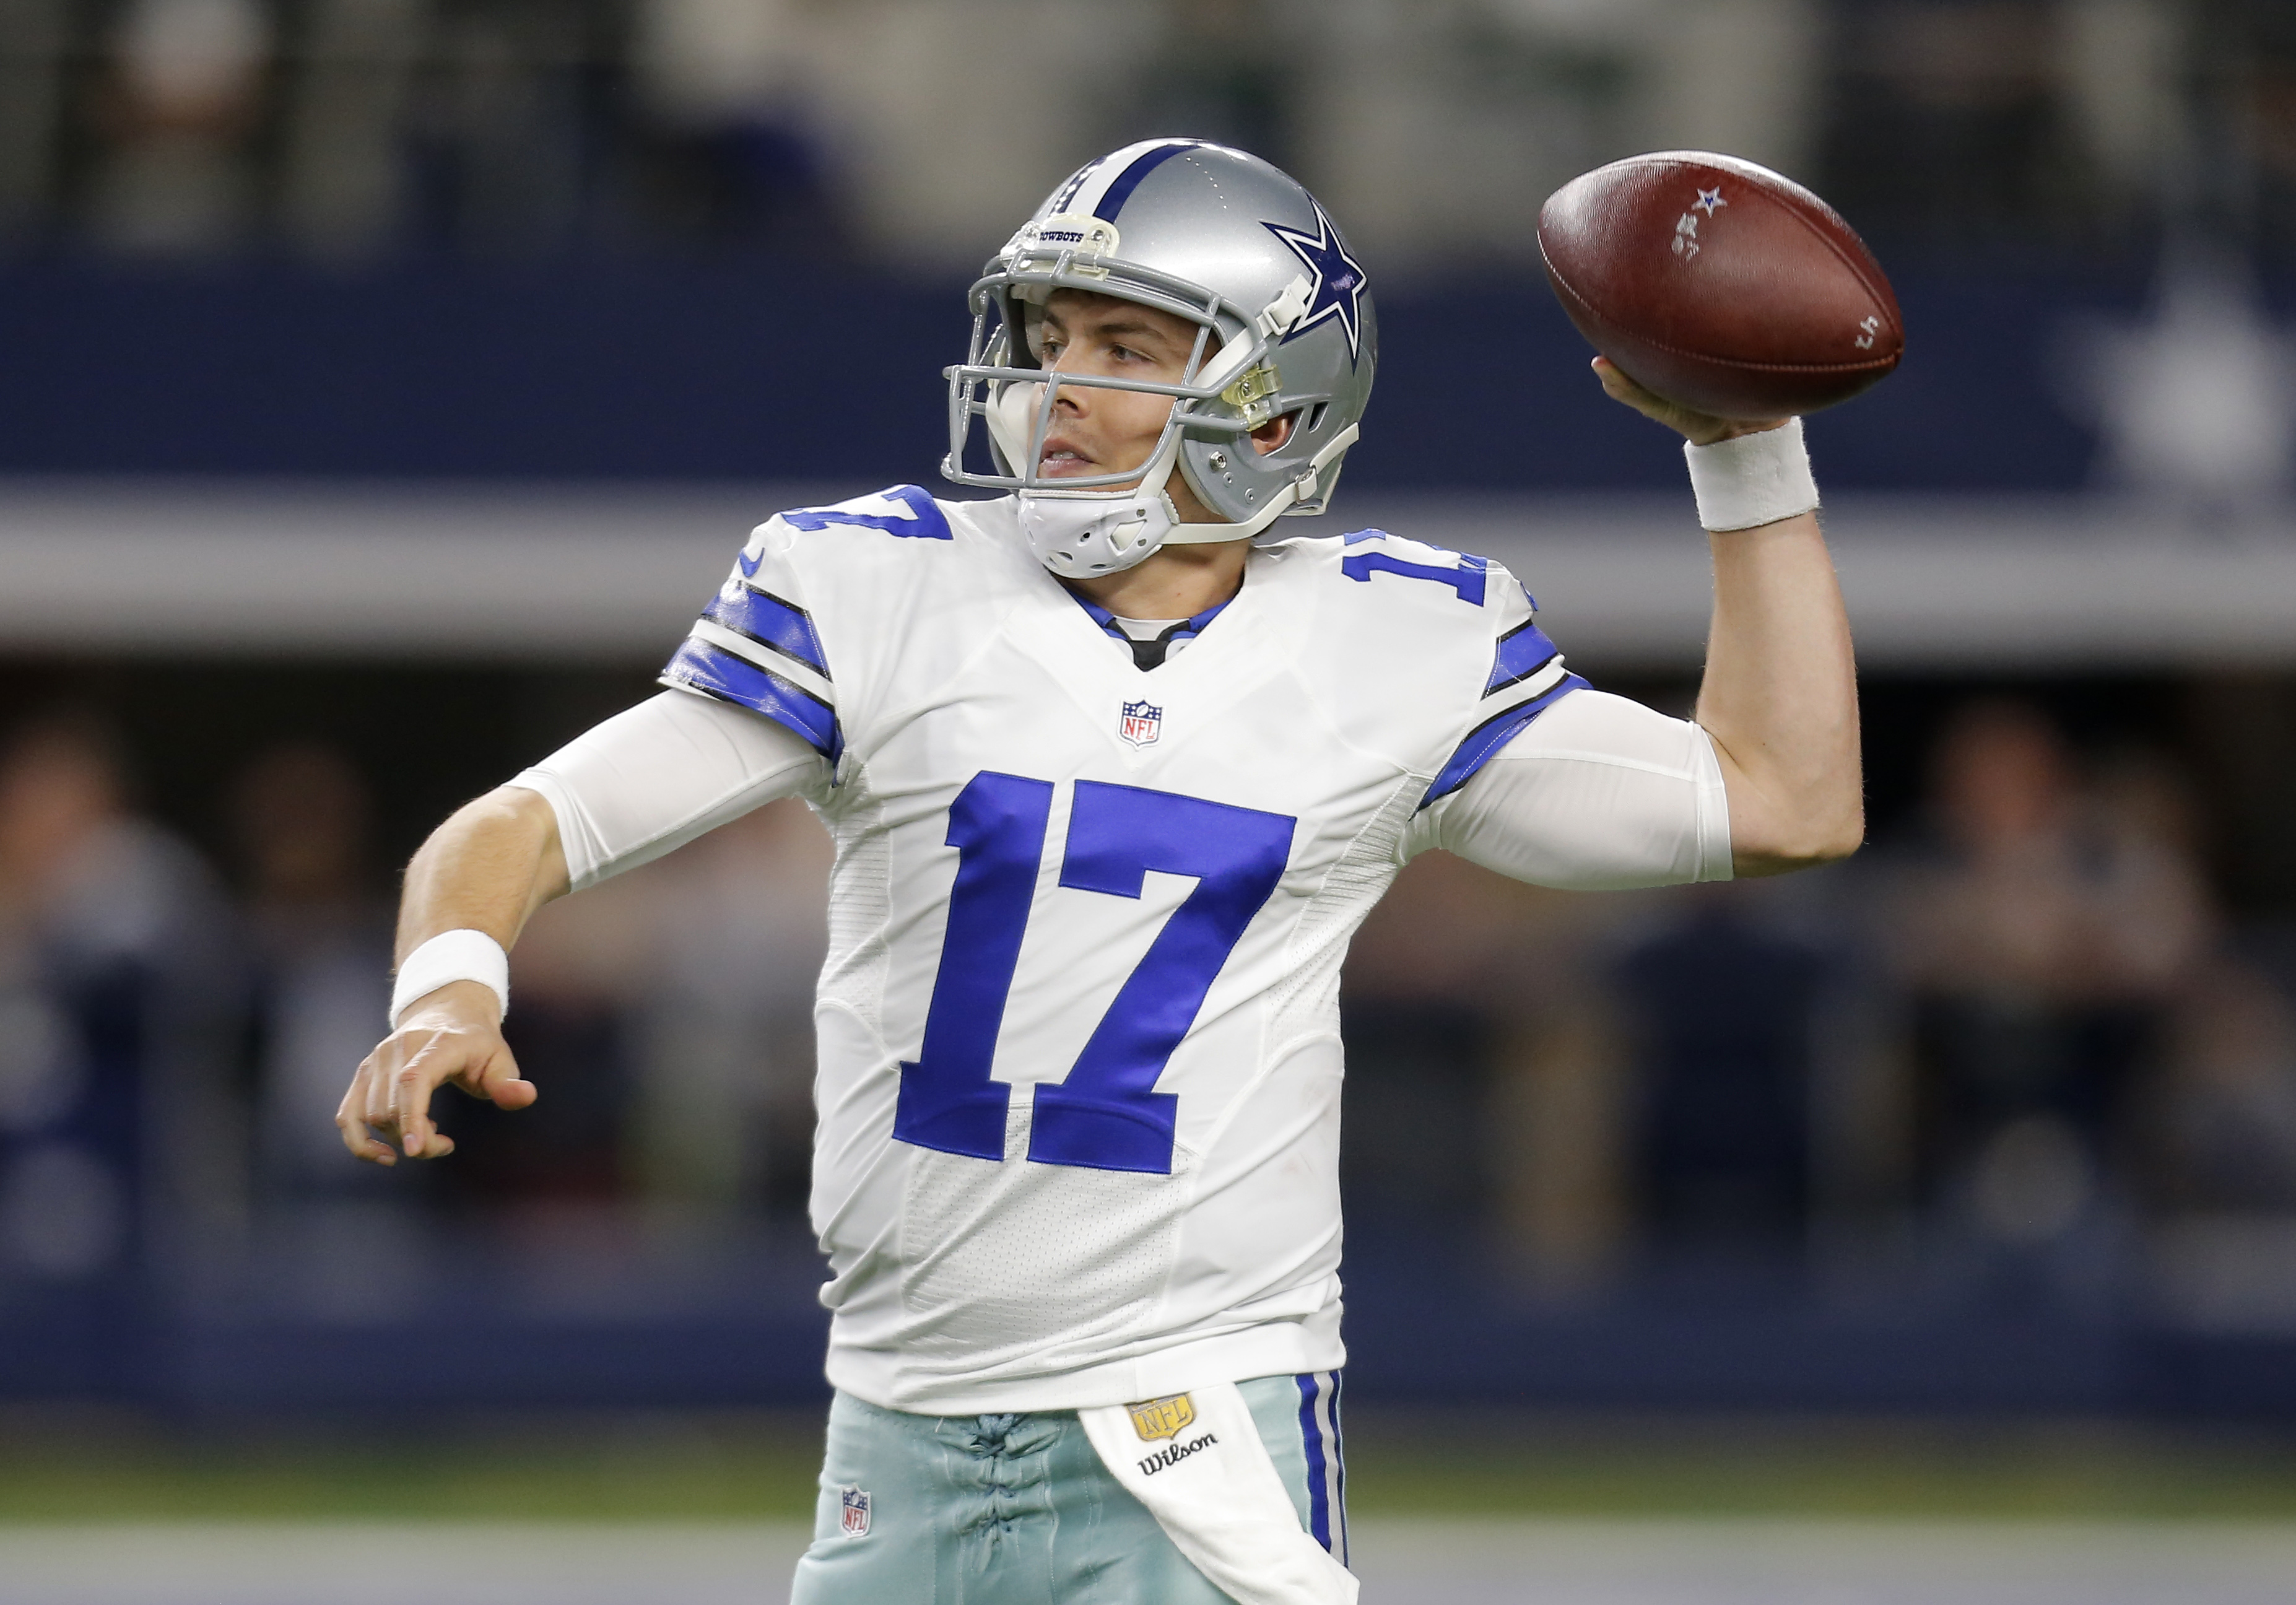 Dallas Cowboys quarterback Kellen Moore (17) throws a pass against the New York Jets in the first half of an NFL football game, Saturday, Dec. 19, 2015, in Arlington, Texas. (AP Photo/Brandon Wade)